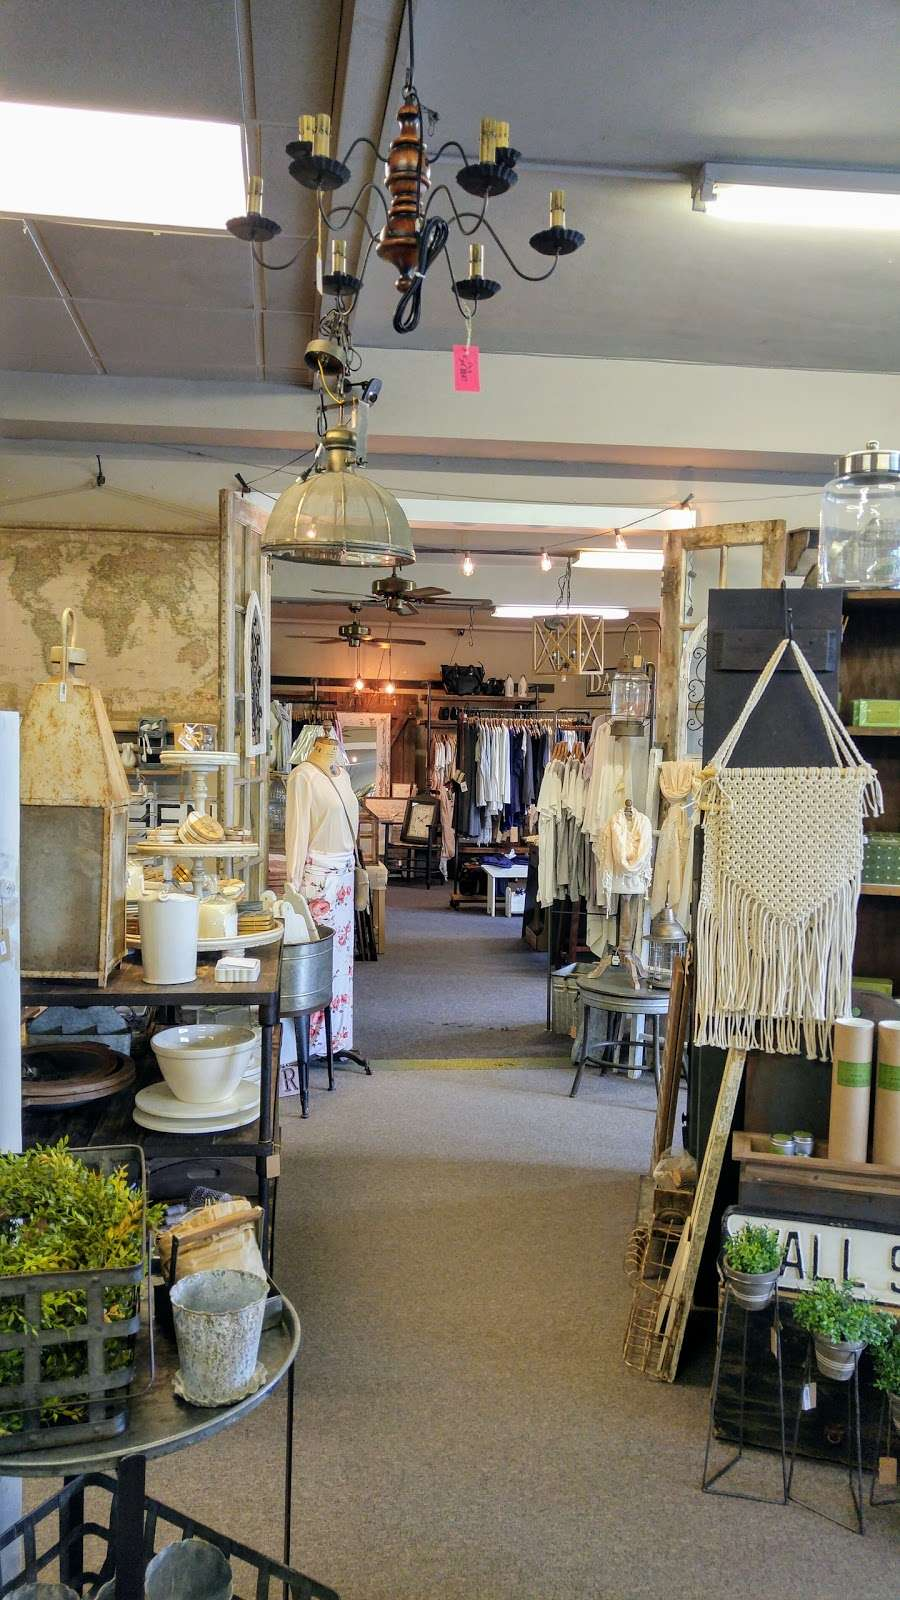 Cocalico Creek Country Store - home goods store  | Photo 3 of 10 | Address: 1037 N Reading Rd, Stevens, PA 17578, USA | Phone: (717) 336-5522